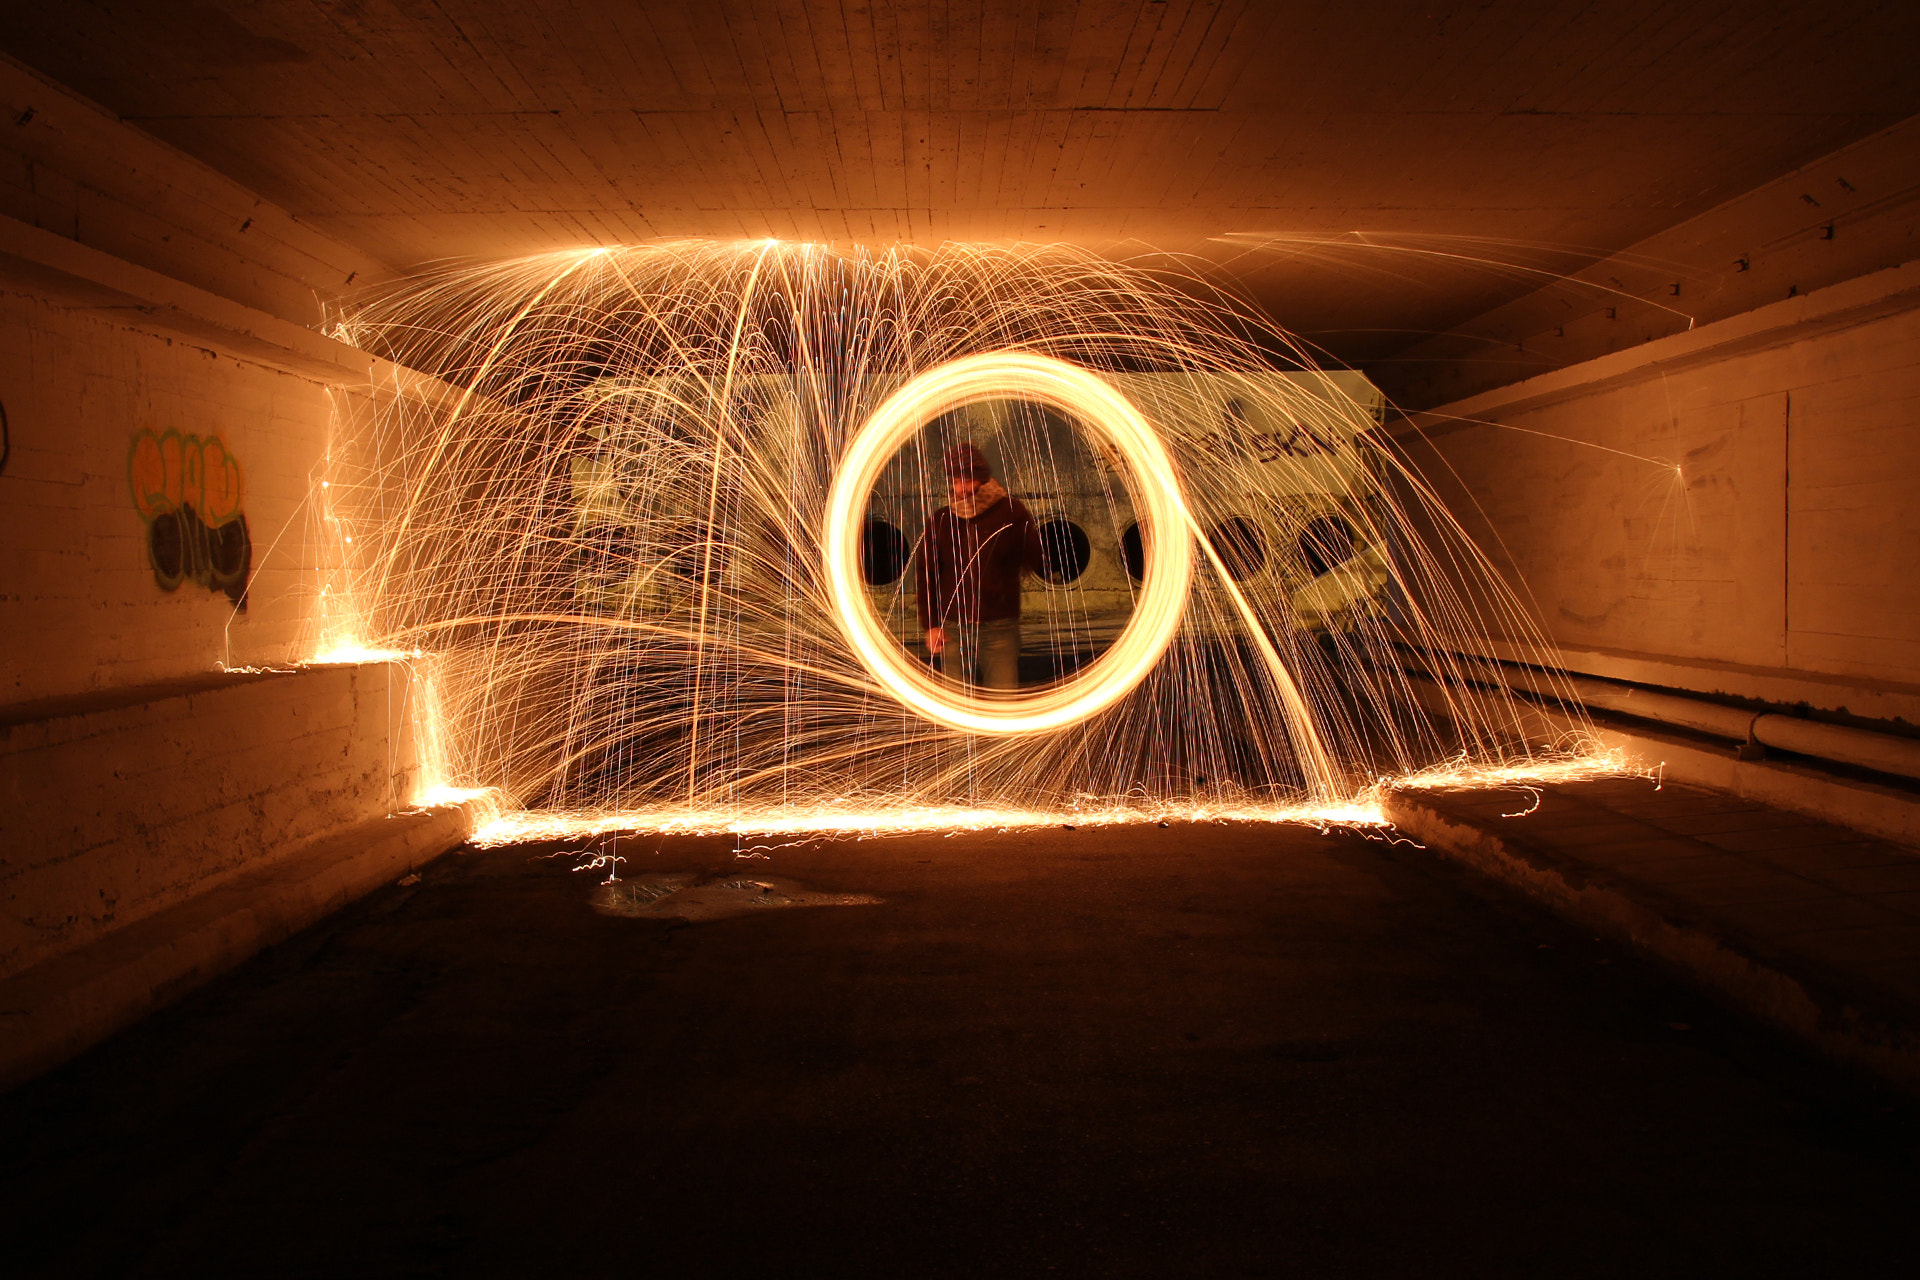 Photograph Spinning Fire 2 by Basil Mitropoulos on 500px